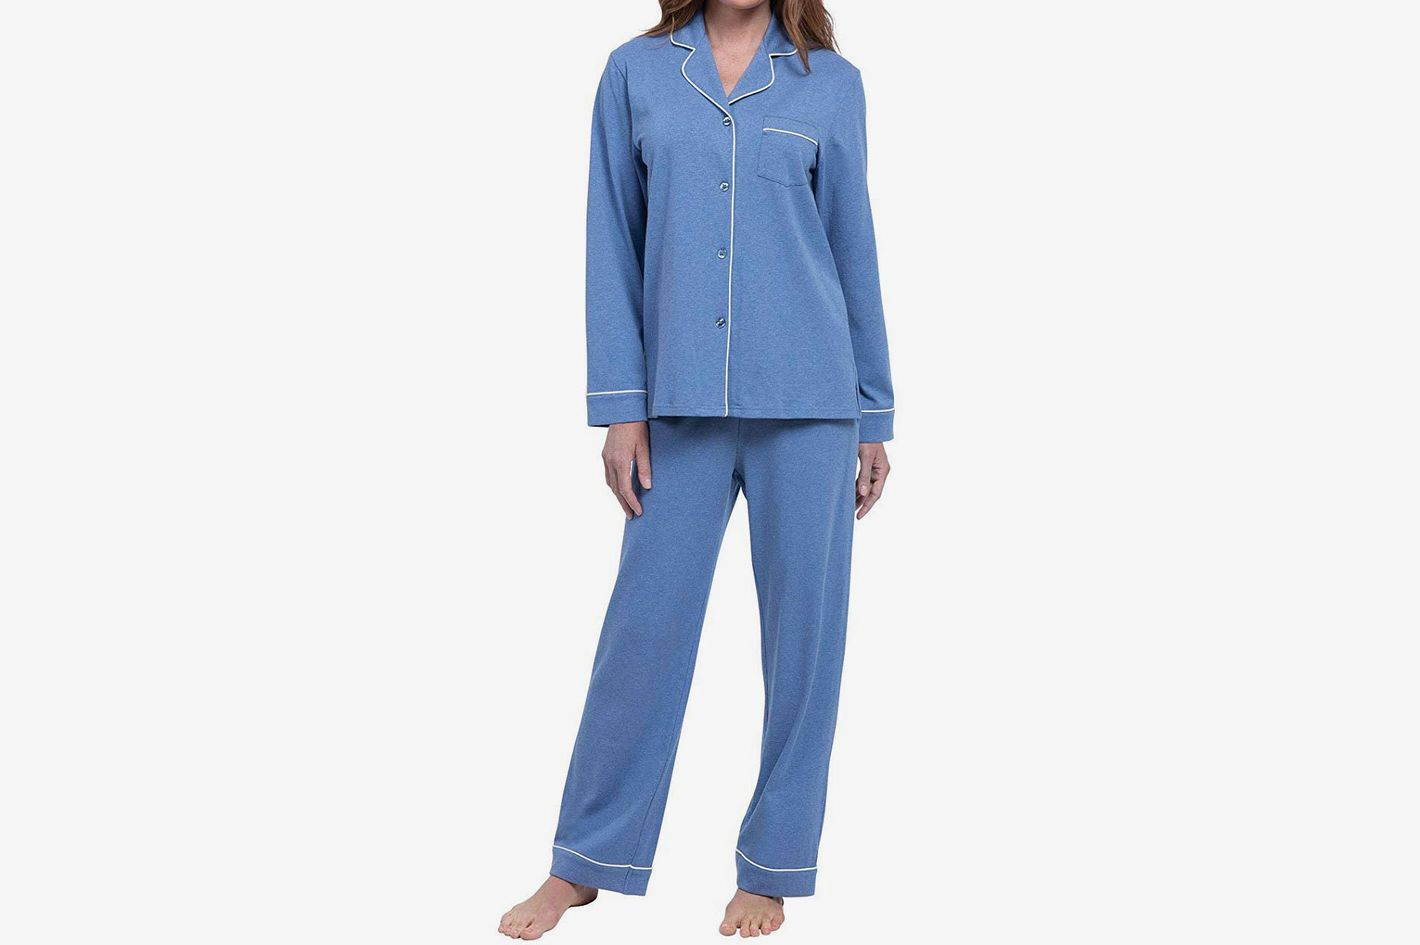 75bd625ef PajamaGram Pajamas for Women - Cotton Jersey Womens Pajamas